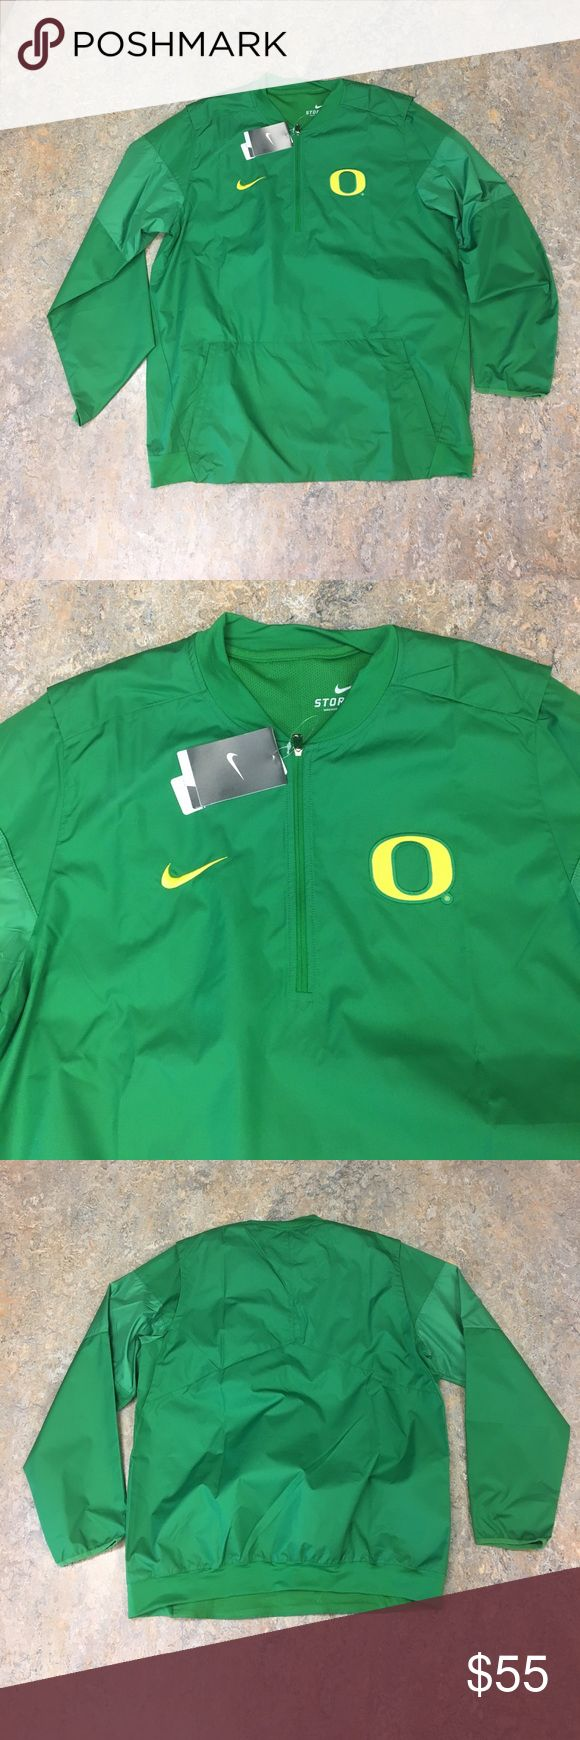 Oregon Ducks Nike Men's Lockdown Jacket Large Brand new with tags officially licensed Oregon Ducks Nike men's jacket size large Nike Jackets & Coats Lightweight & Shirt Jackets